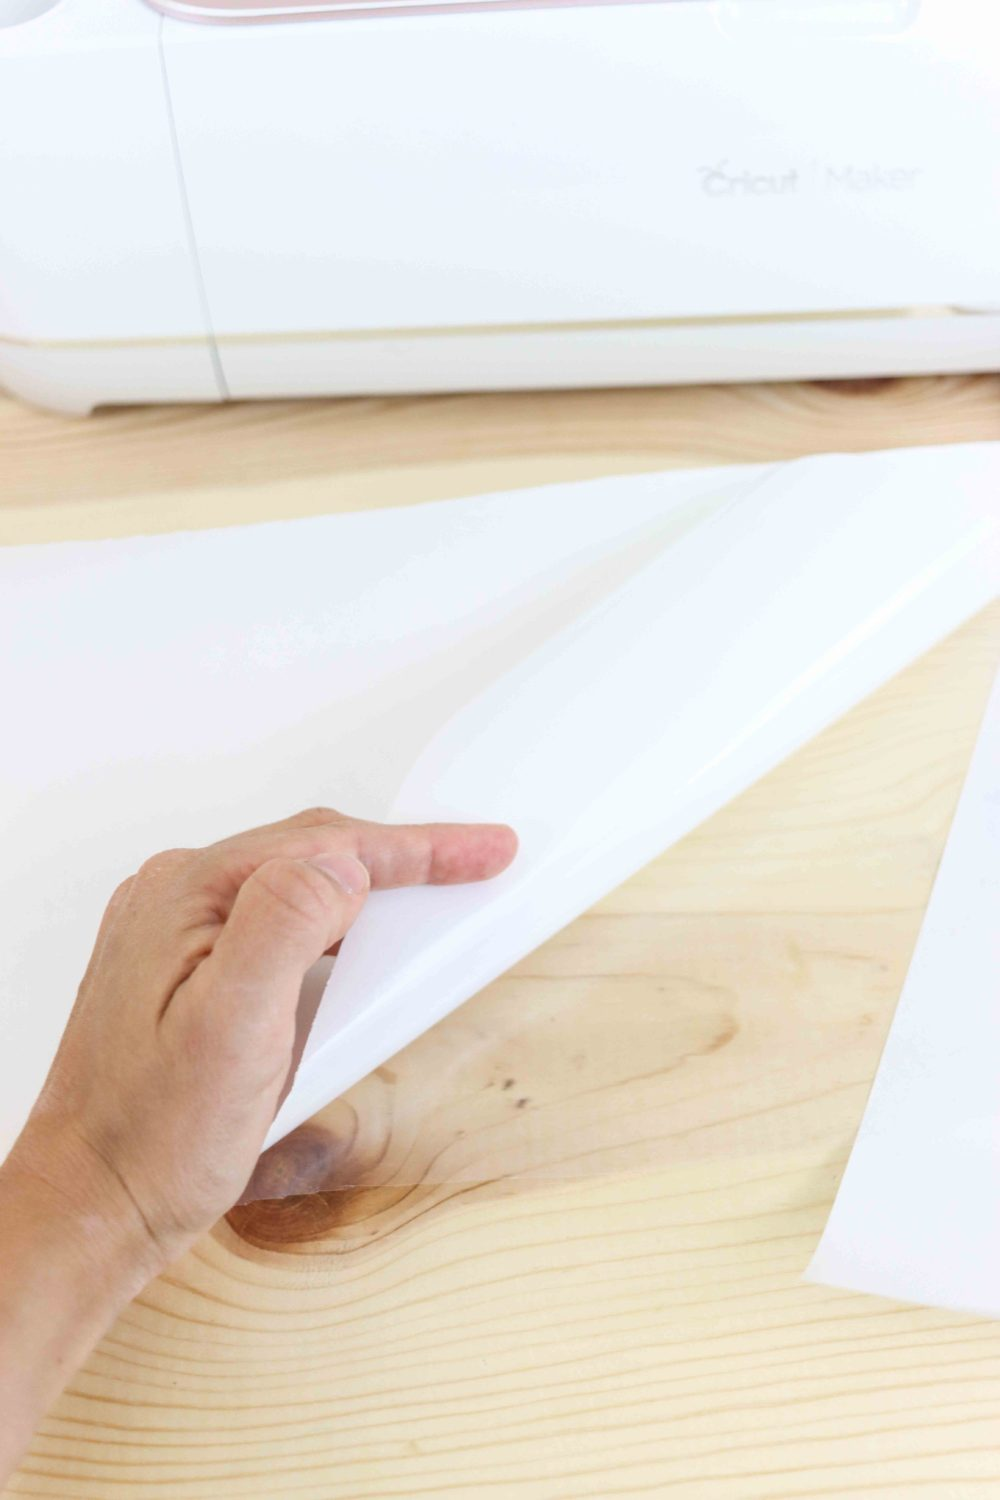 placing freezer paper on heat transfer carrier sheet